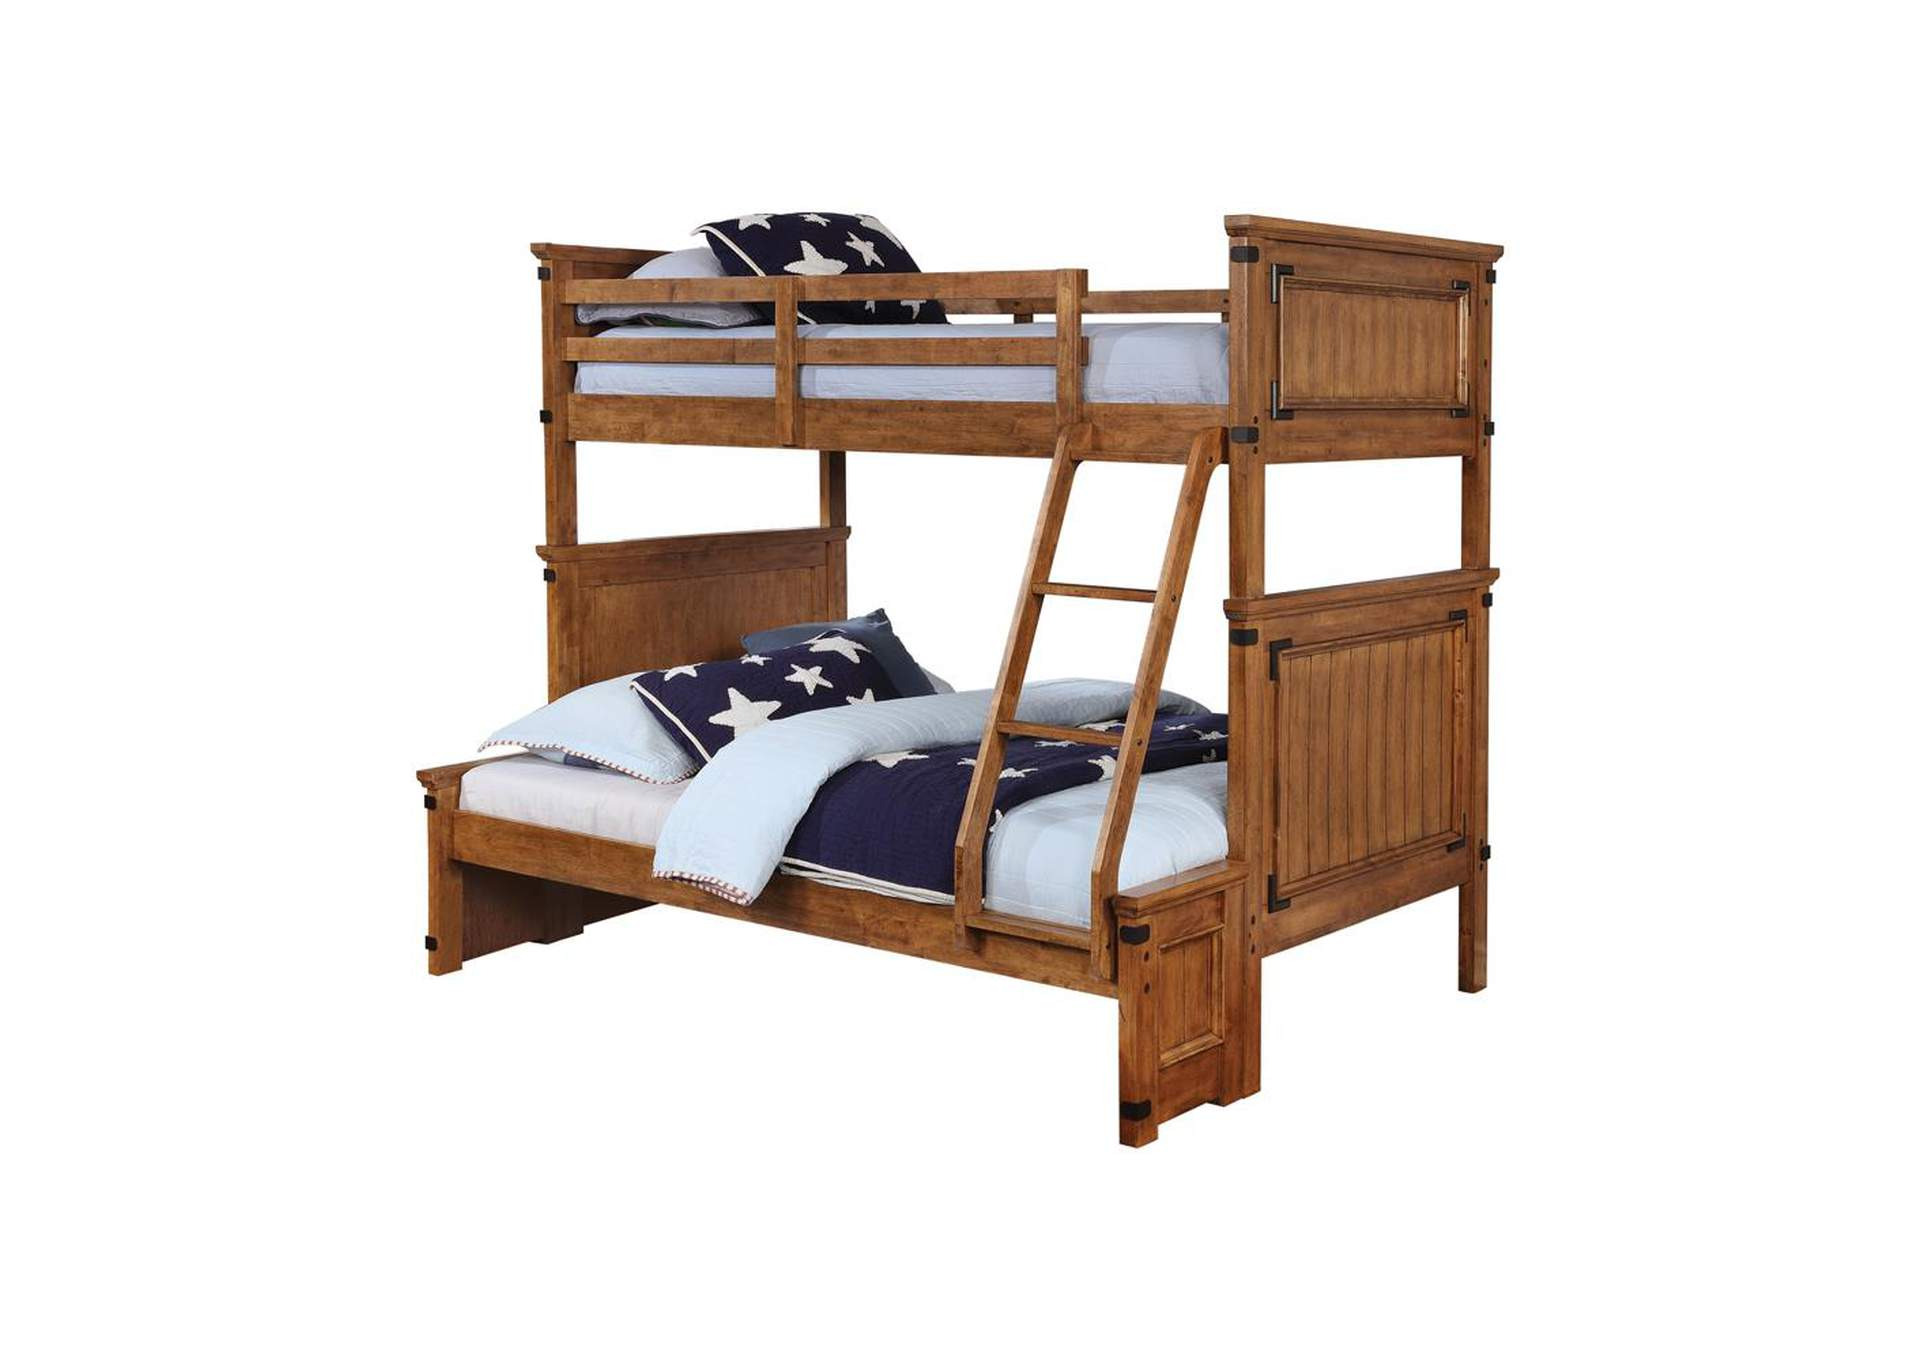 Mule Fawn Coronado Rustic Honey Twin-over-Full Bunk Bed,Coaster Furniture